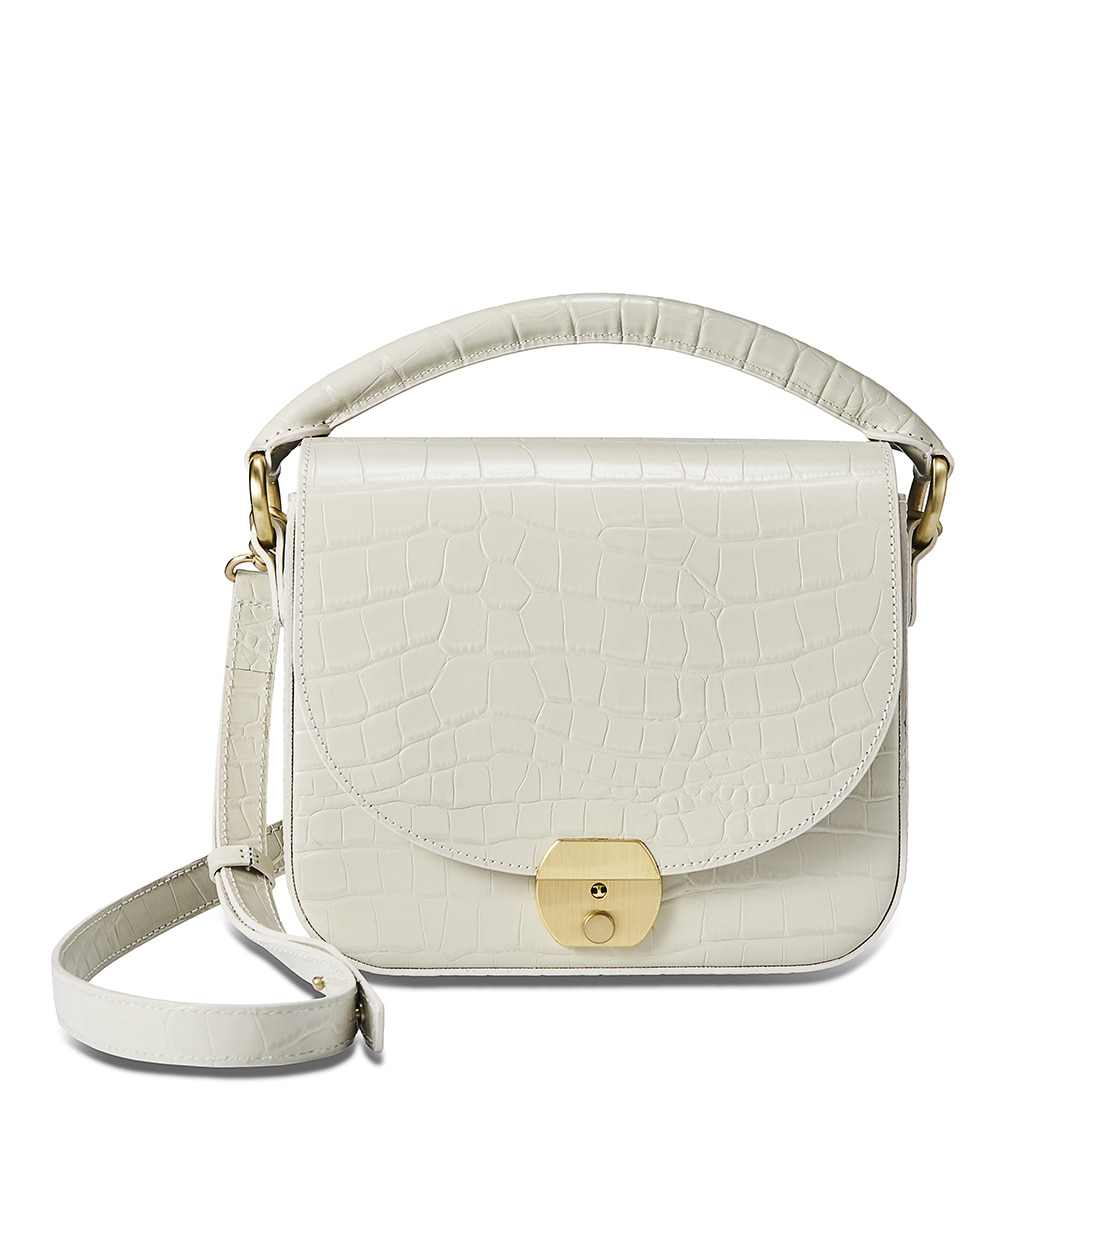 betty bag - oatmeal embo [refurb 50%]